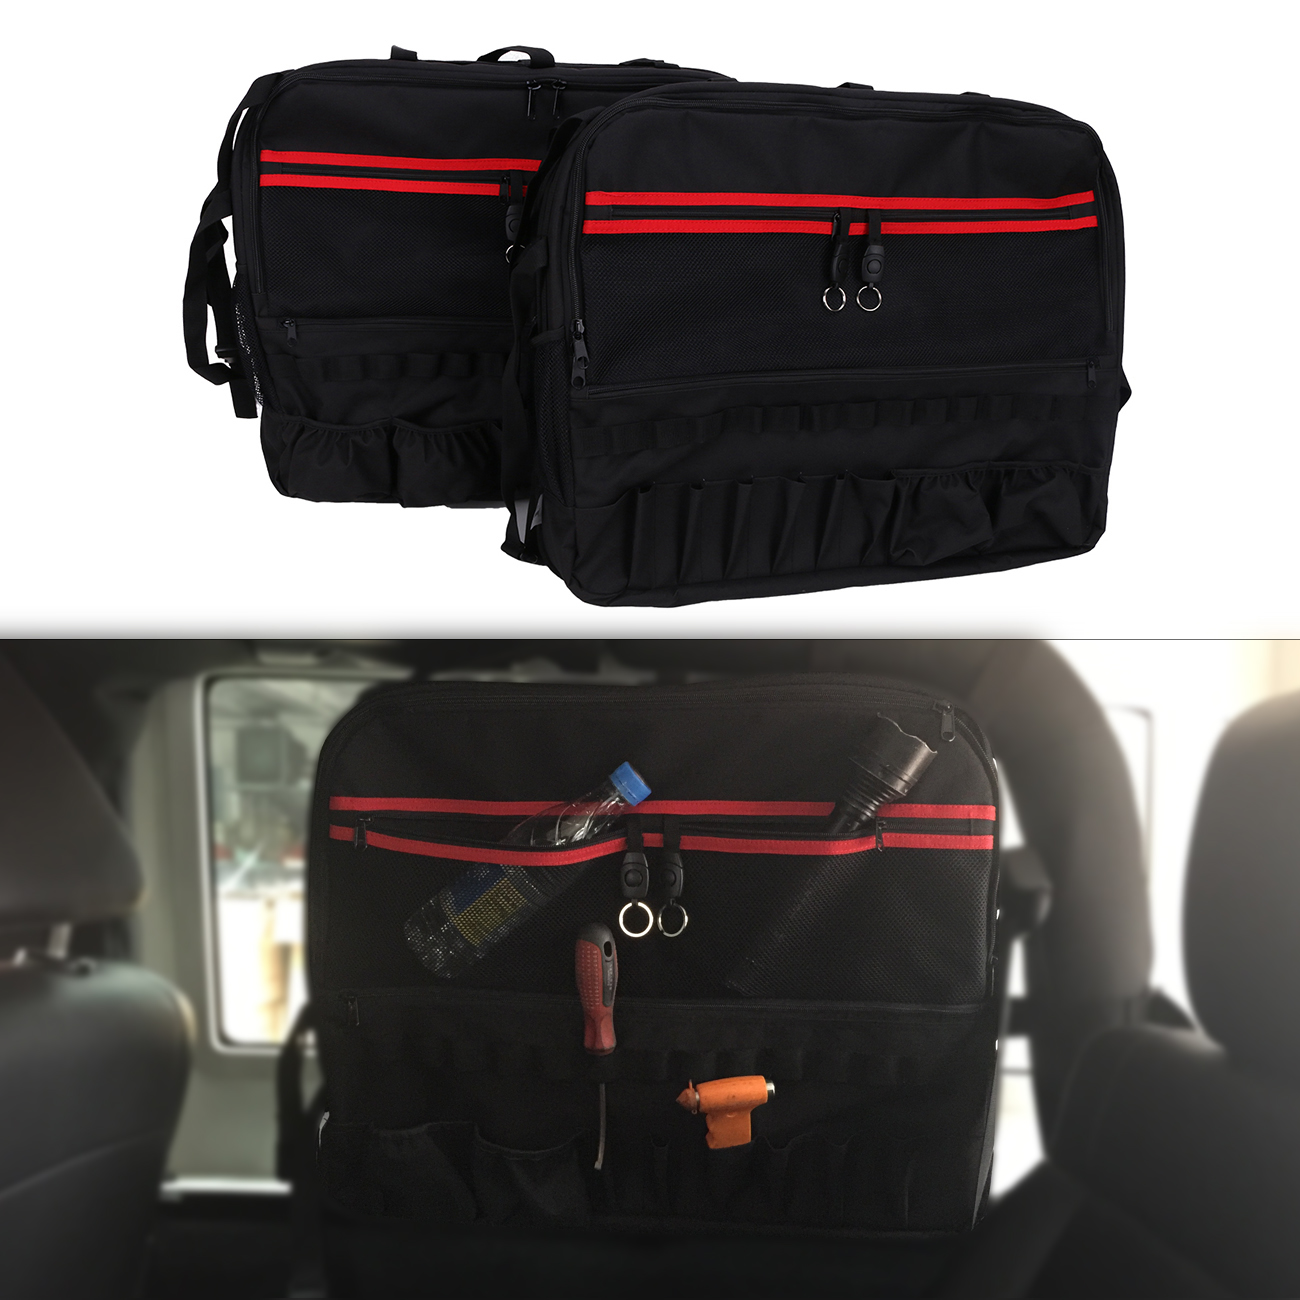 2x Roll Bar Storage Bag Luggage For Jeep Wrangler JK 2 Door 2007-2017 Car Interior Tool Kits Bottle Drink Phone Bags #CE059 2 pcs black car styling parts front rear grab bar handles for jeep wrangler jk 2007 2017 new fashion upgraded